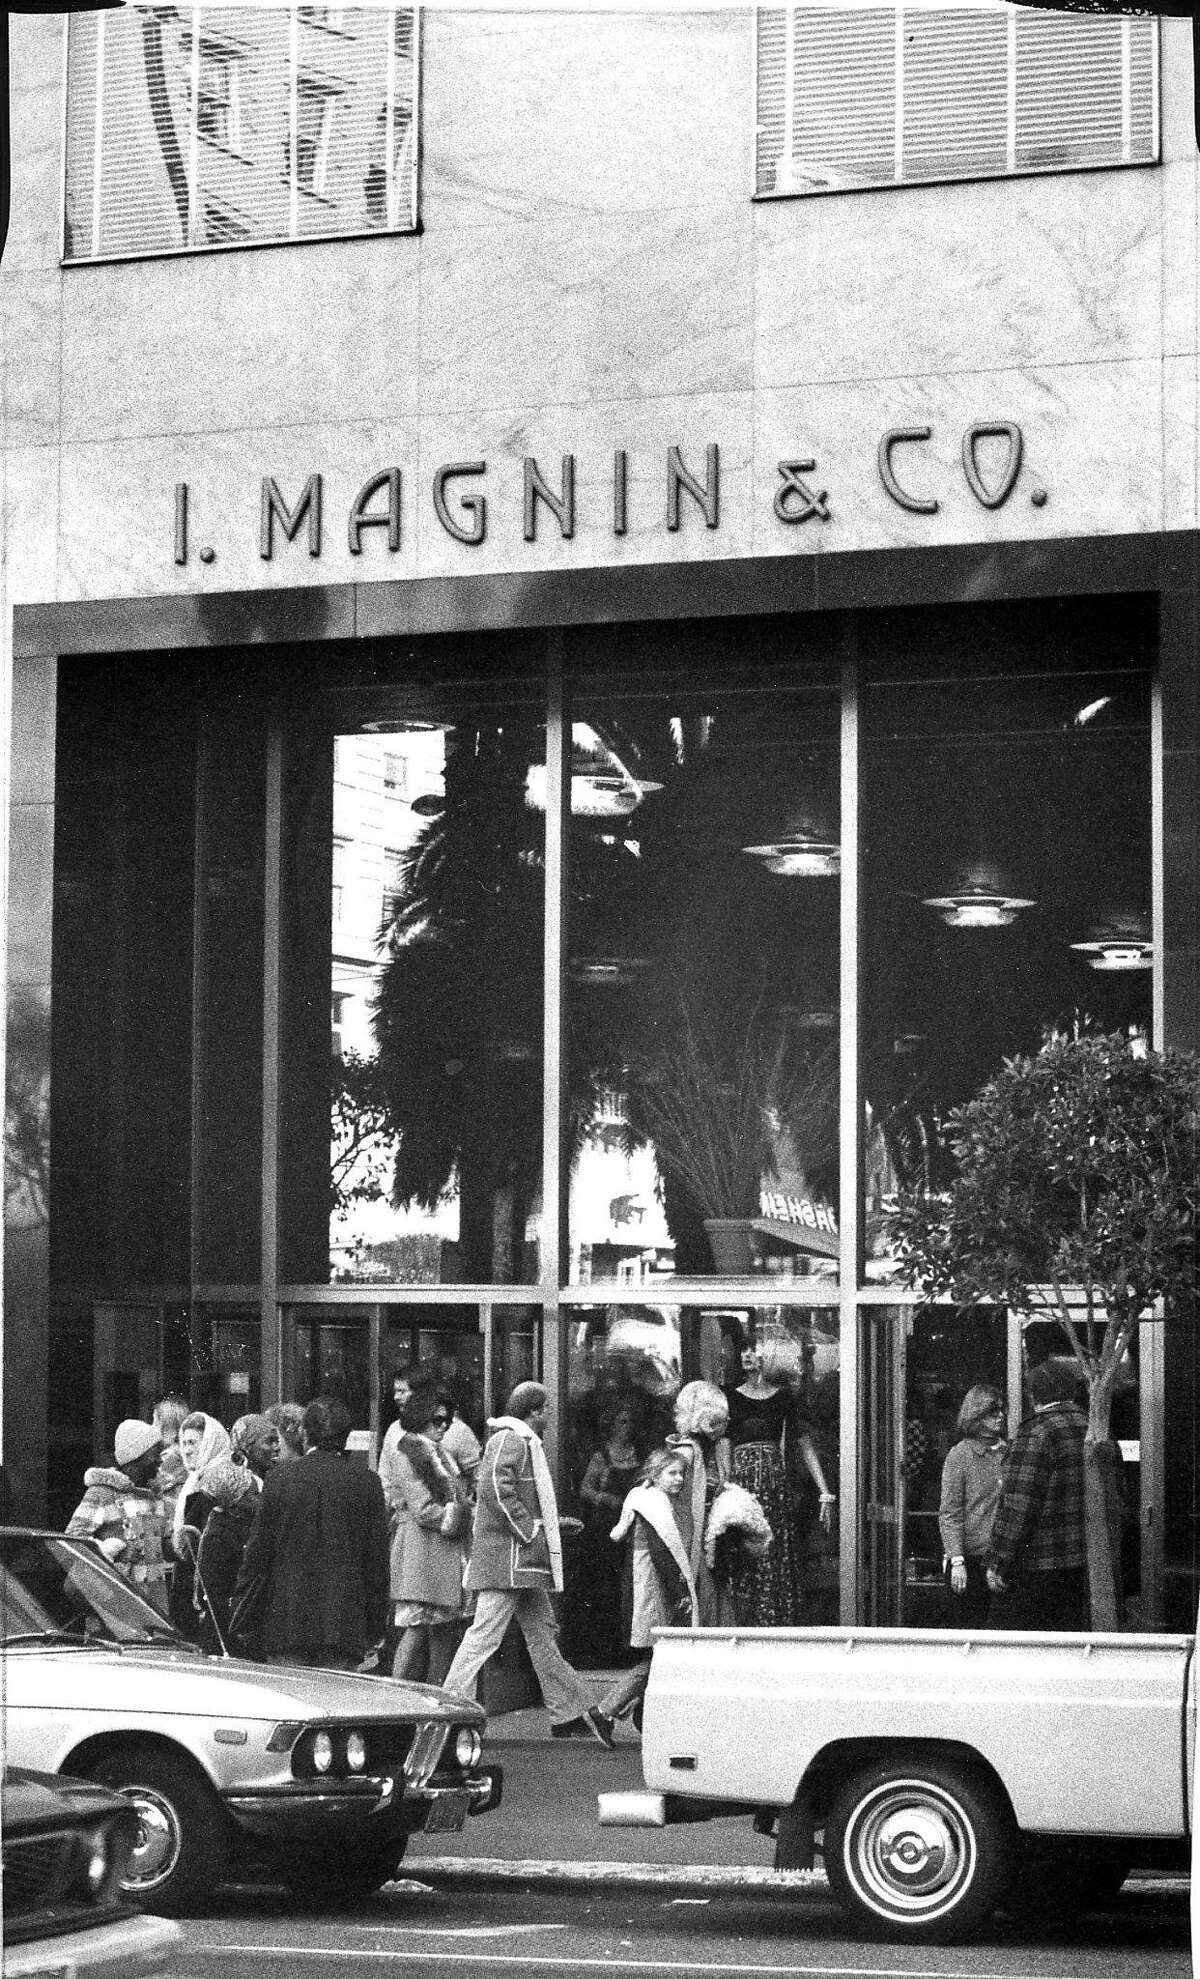 The I. Magnin building on Union Square, March 2, 1976